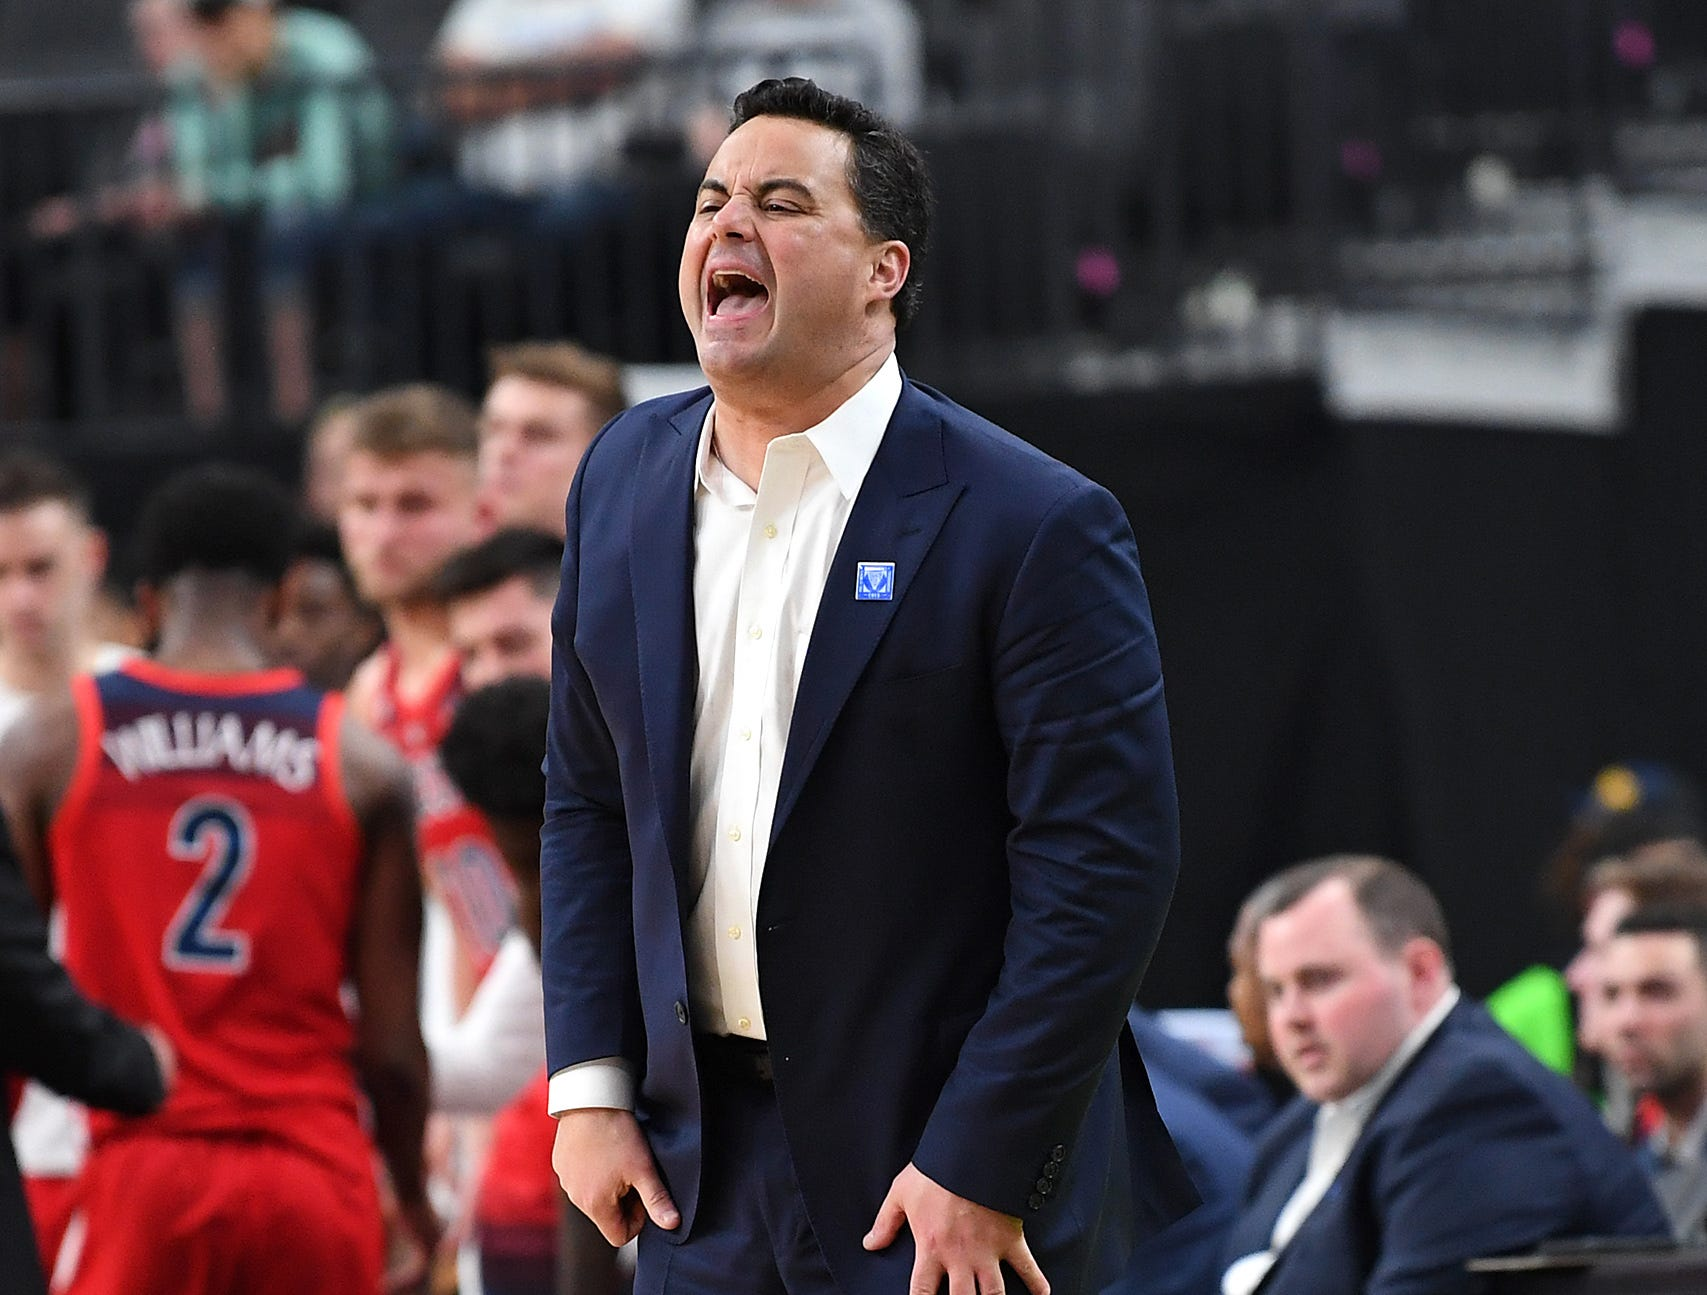 Mar 13, 2019; Las Vegas, NV, United States; Arizona Wildcats head coach Sean Miller reacts during the first half against the USC Trojans in a Pac-12 conference tournament game at T-Mobile Arena. Mandatory Credit: Stephen R. Sylvanie-USA TODAY Sports